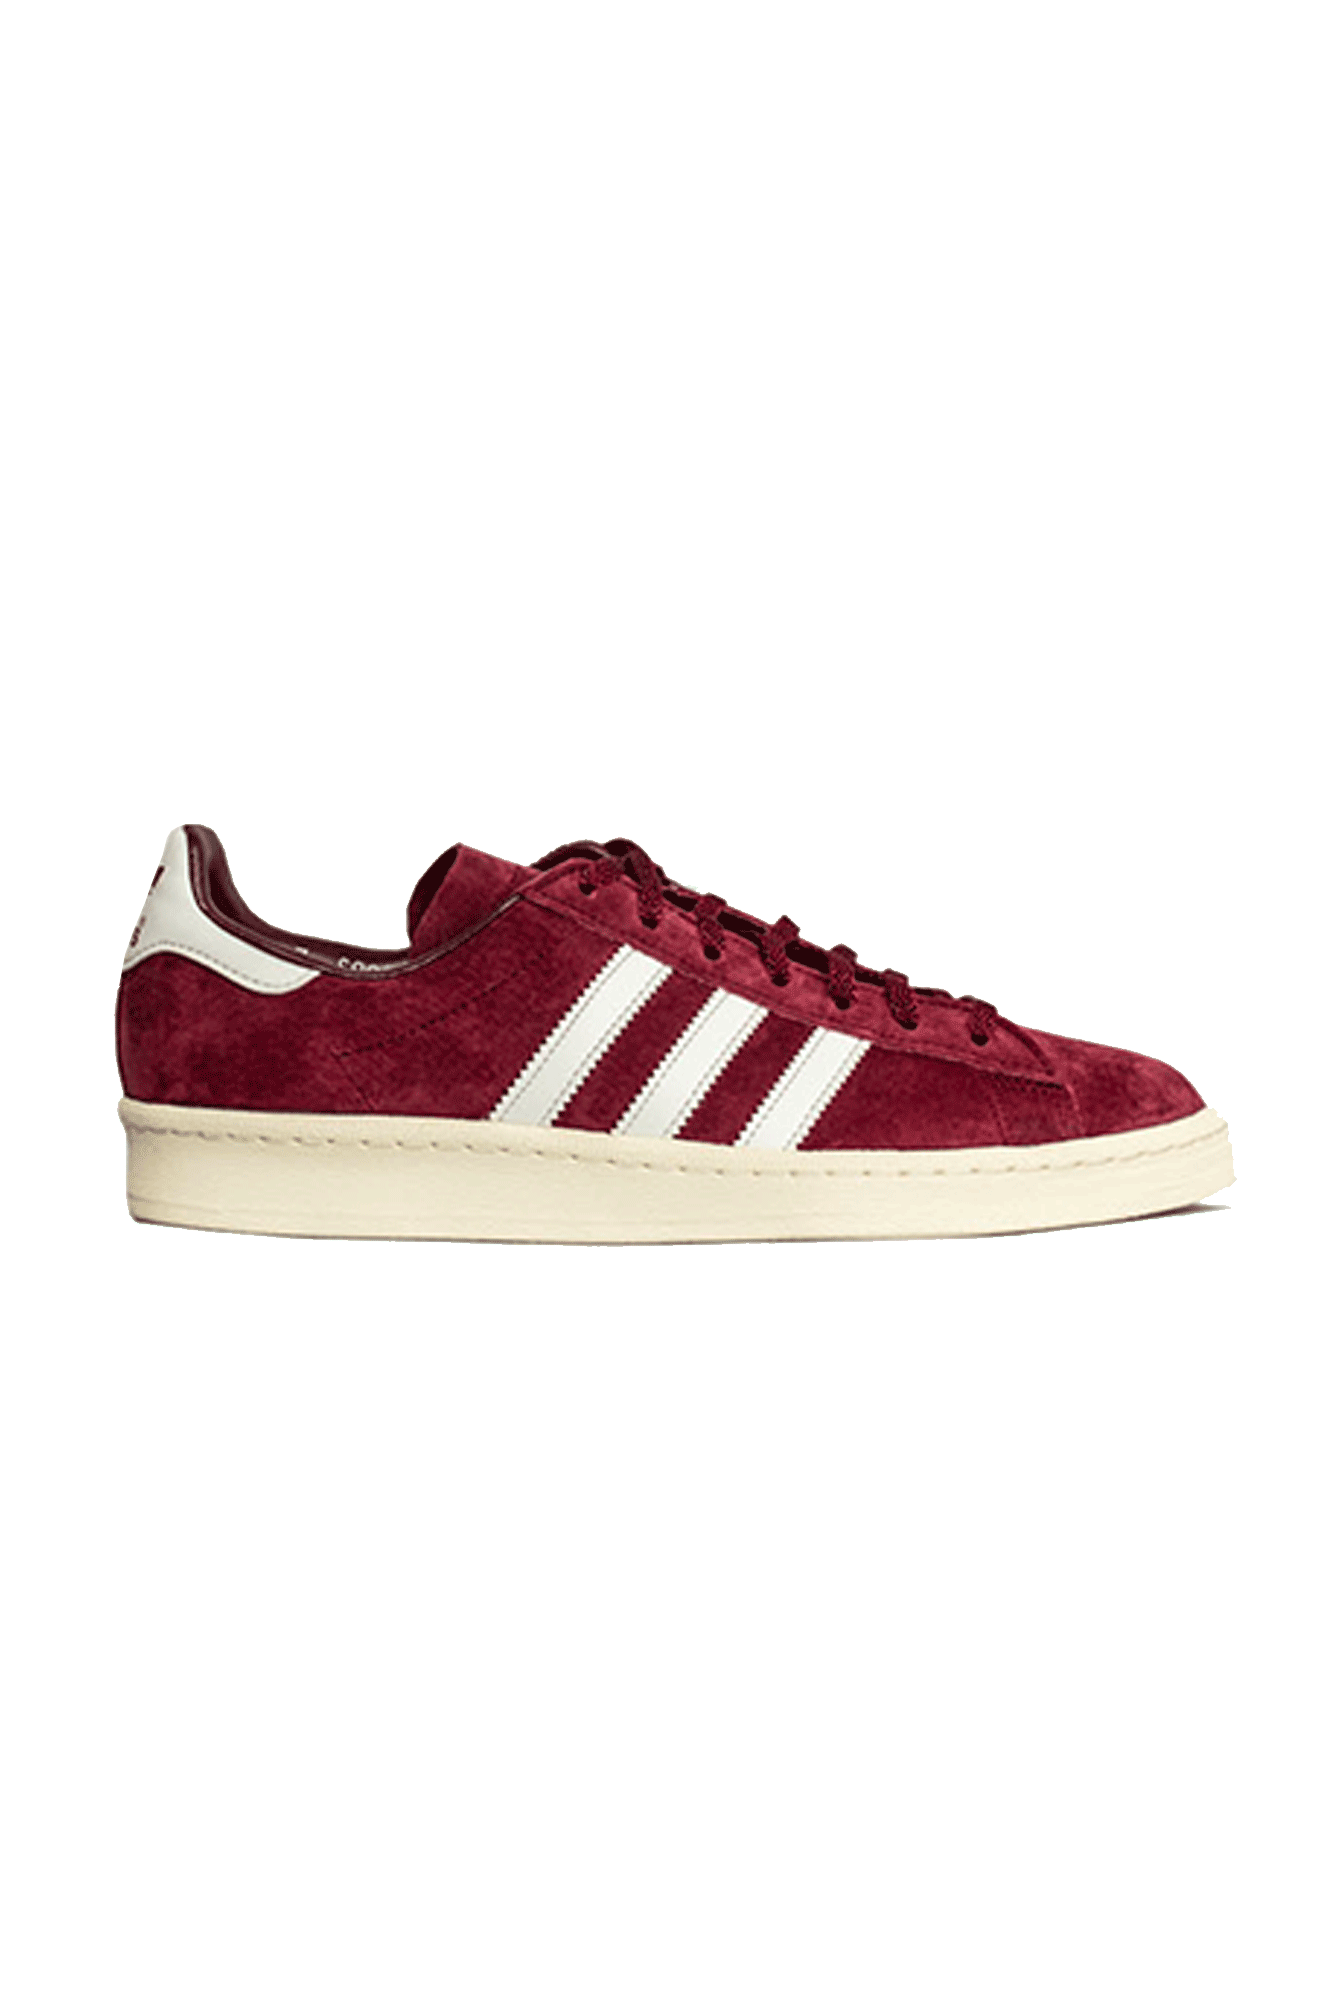 Adidas Originals Sneakers Campus 80s Japan Pack Vntg Red S82738#000#C0012#5 - One Block Down